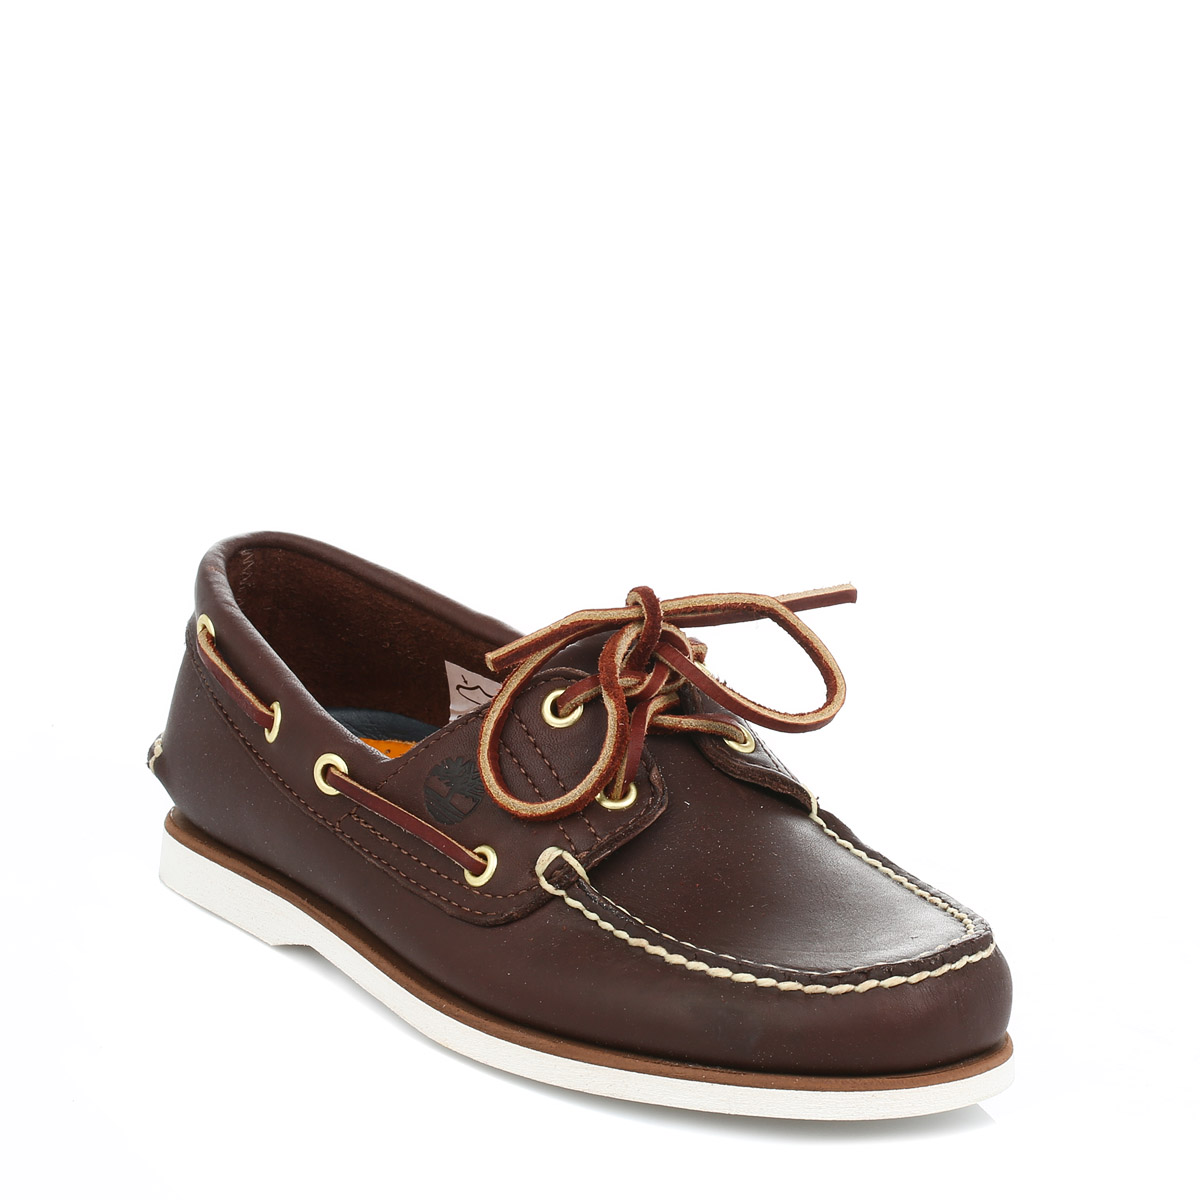 Free shipping BOTH ways on Shoes, Navy, from our vast selection of styles. Fast delivery, and 24/7/ real-person service with a smile. Click or call